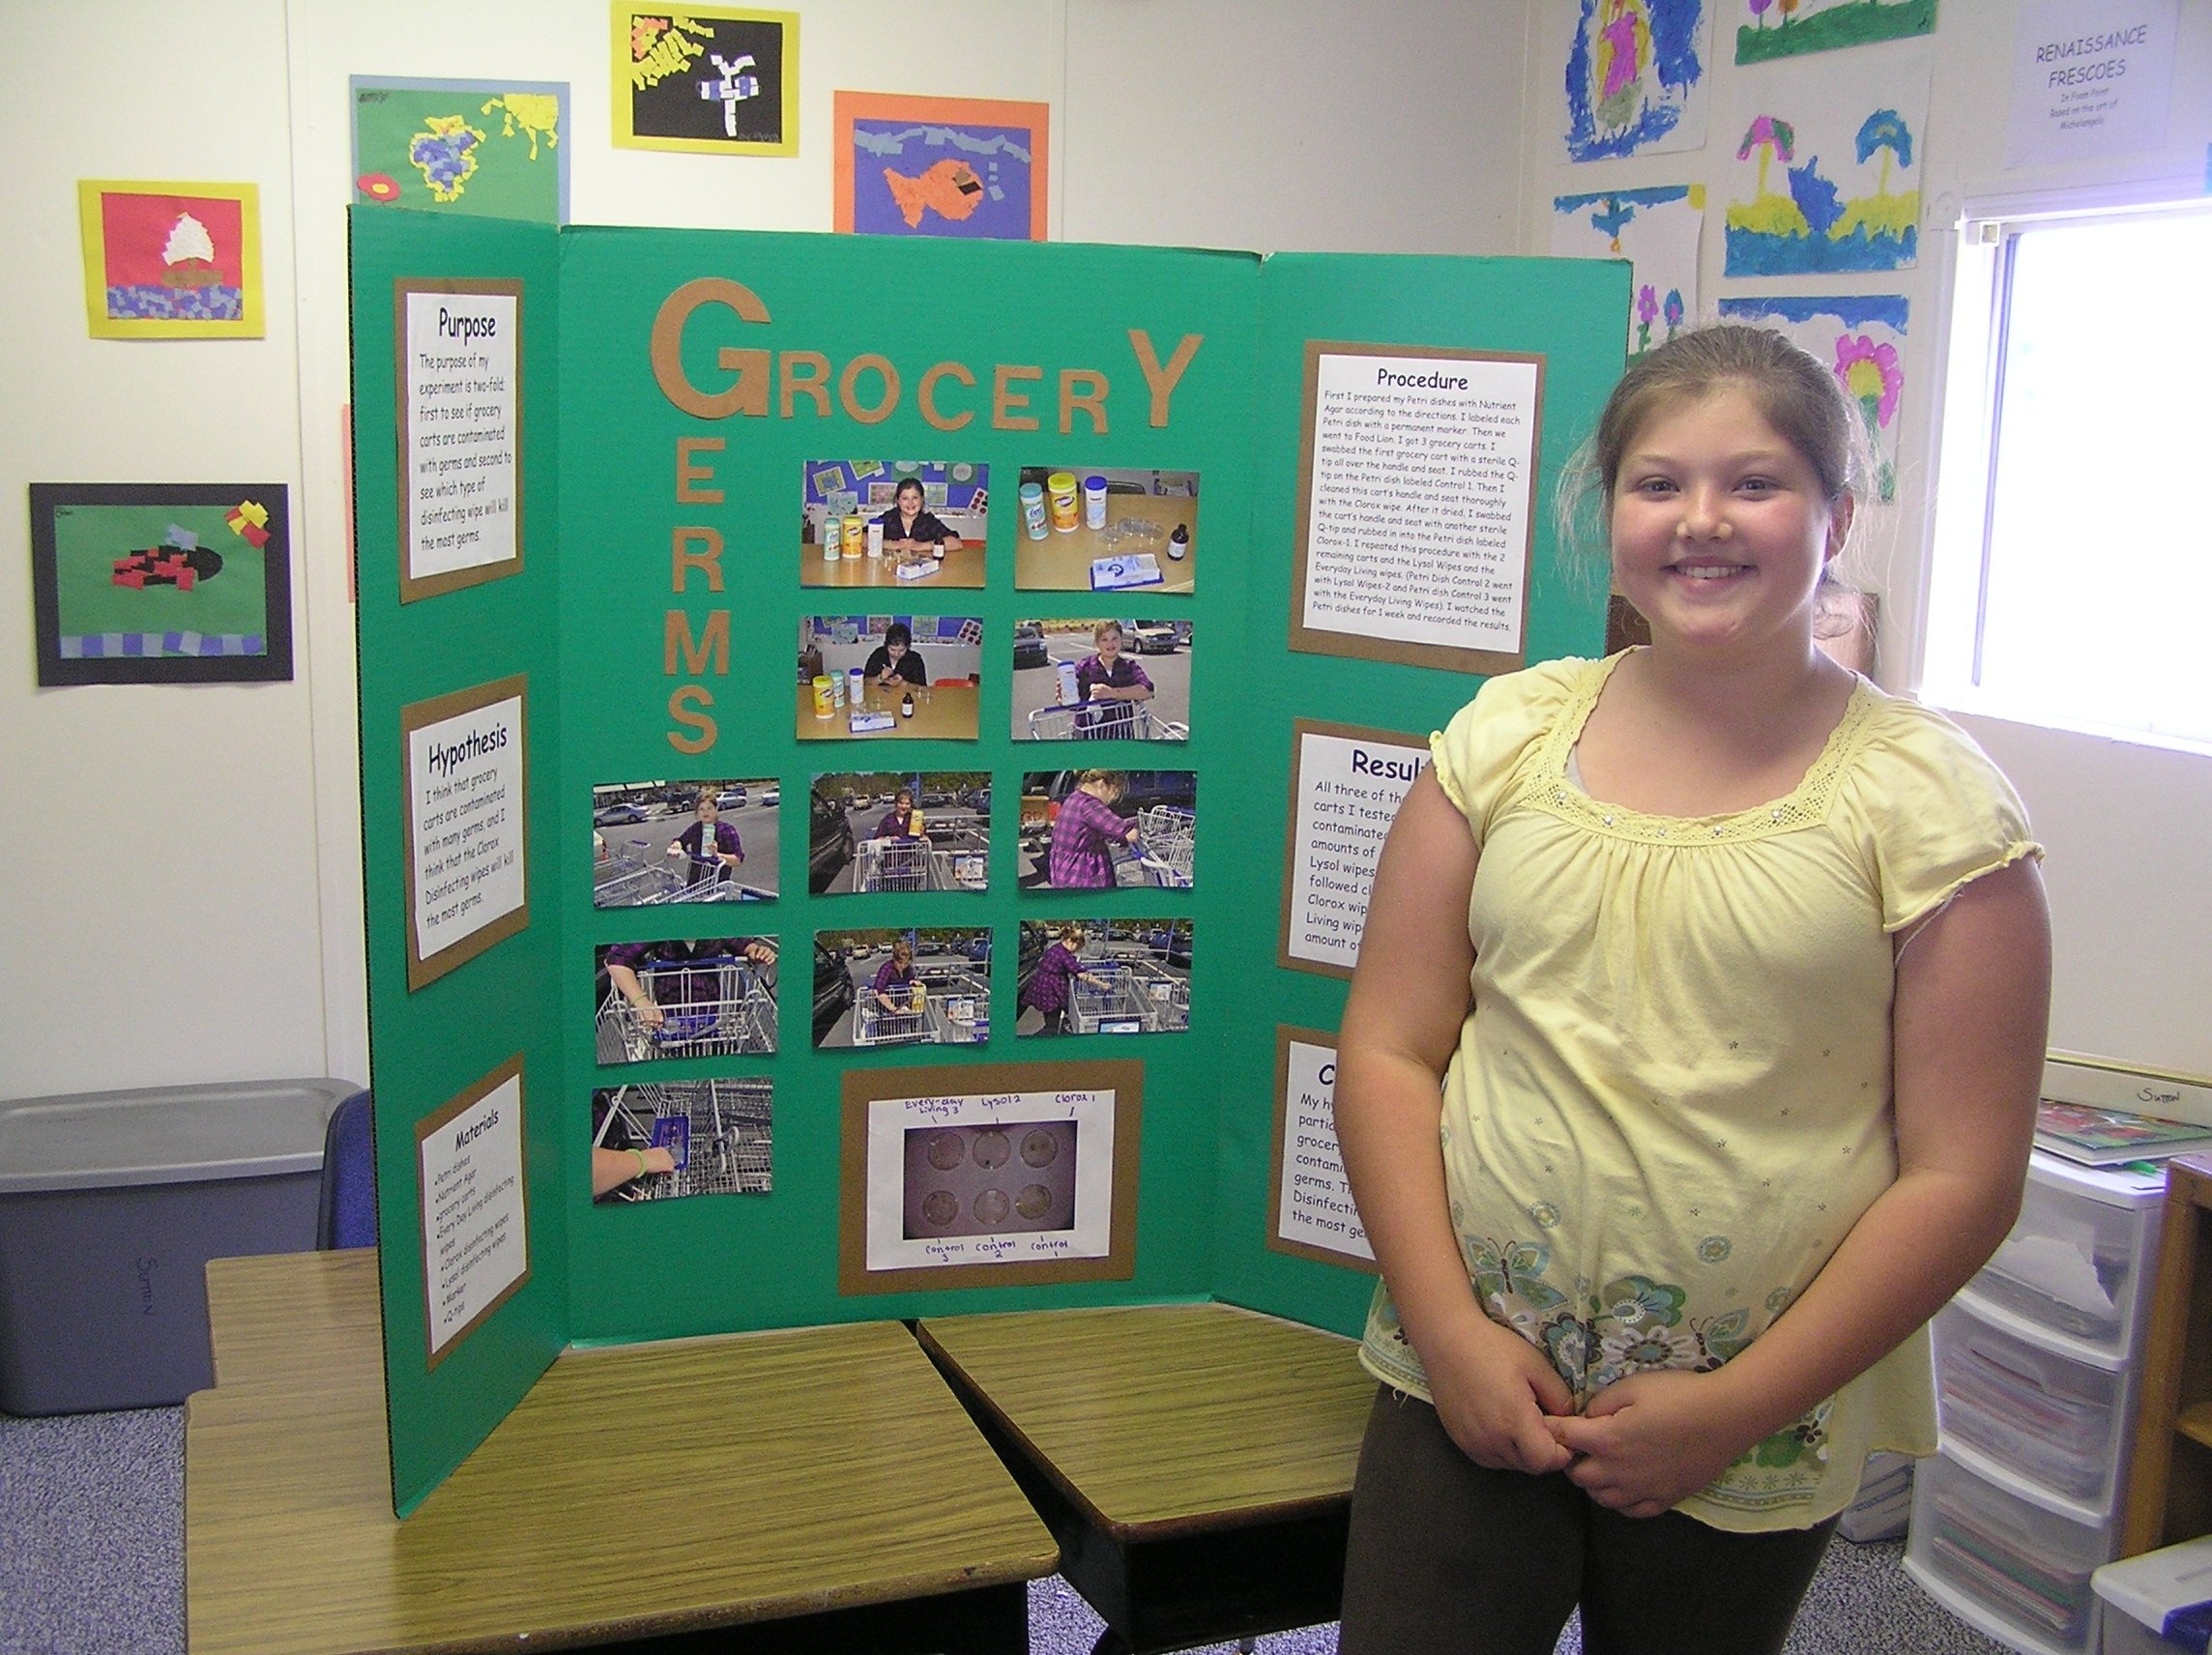 10 Trendy 5Th Grade Science Projects Ideas Easy grocery germs whats on that cart handle science fair 4 2020